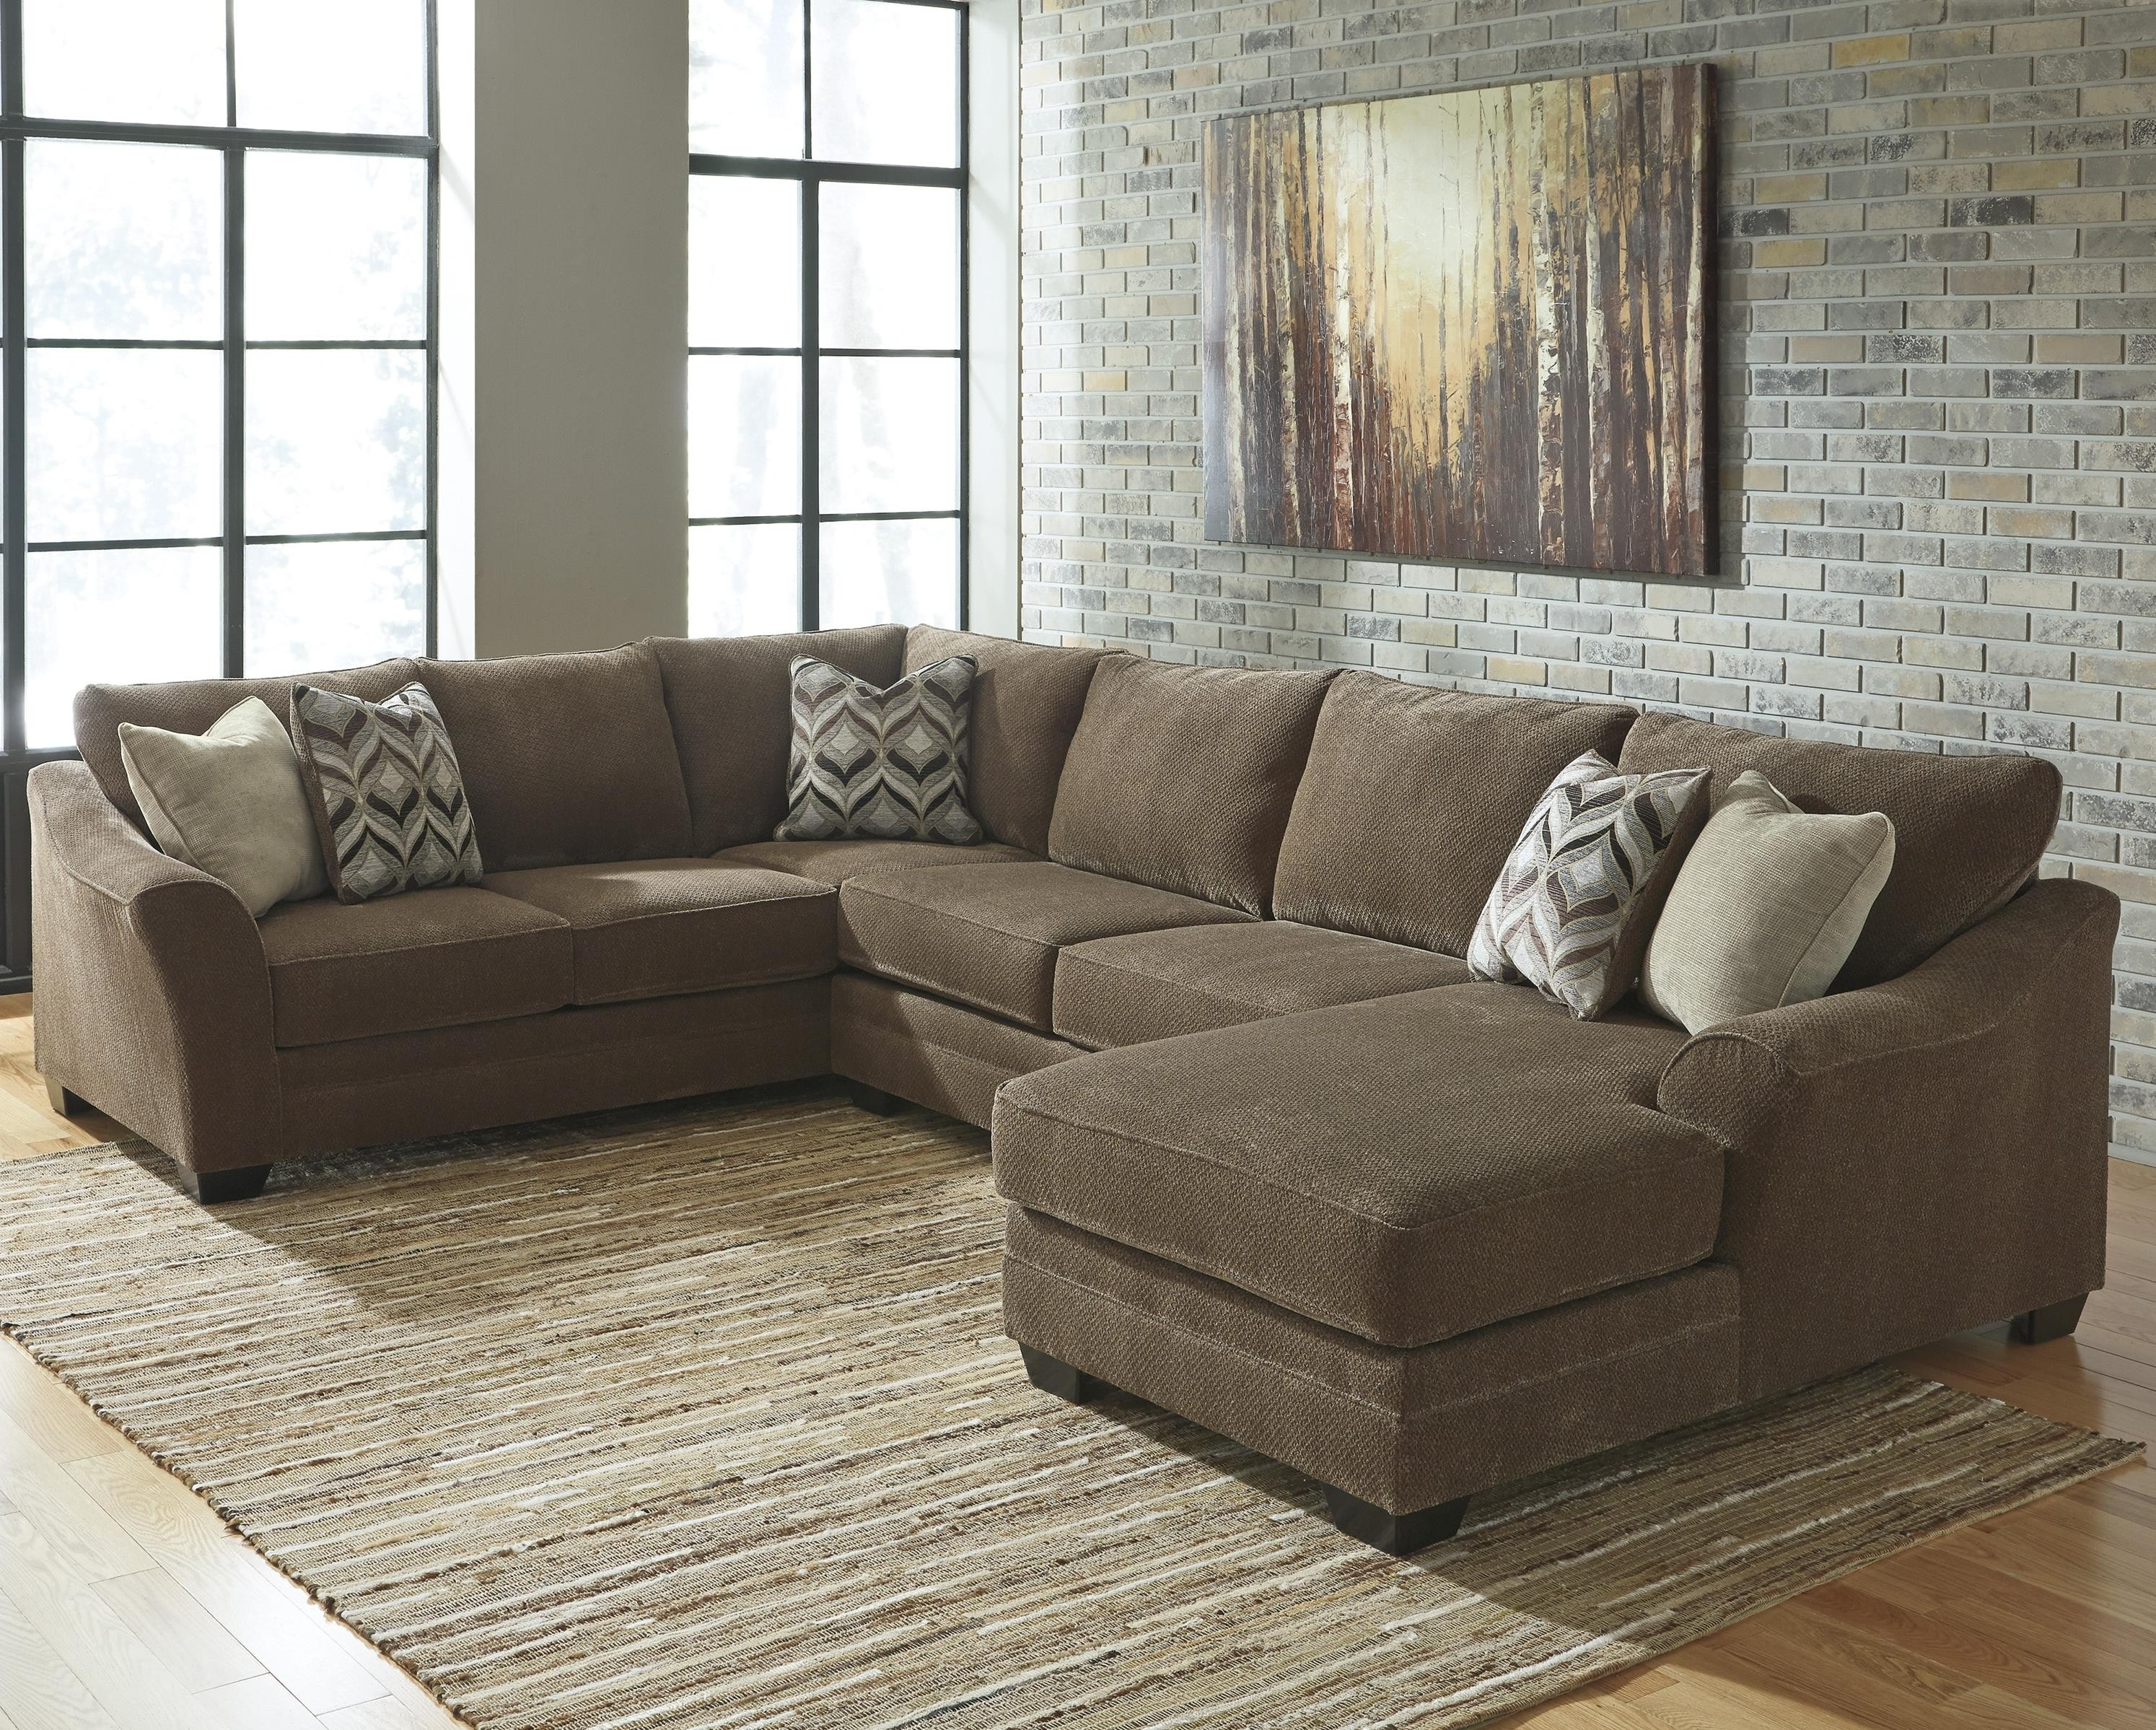 3 Piece Sectional Malbry Point W Laf Chaise Living Spaces 223533 0 For Malbry Point 3 Piece Sectionals With Raf Chaise (Image 2 of 25)